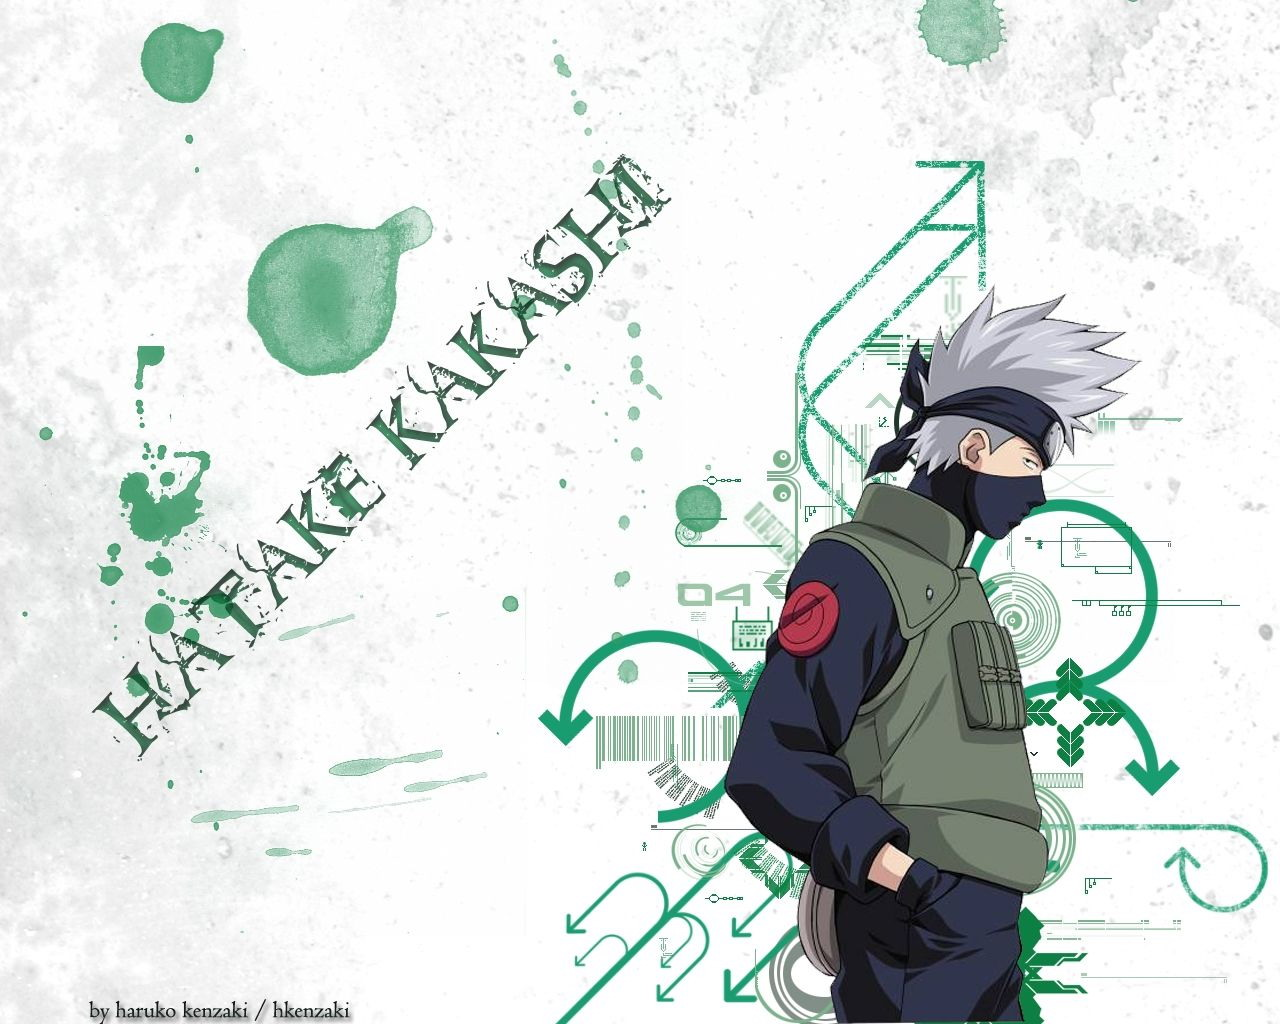 Hatake Kakashi Naruto Wallpaper Hello Kitty Wallpapers 1280x1024